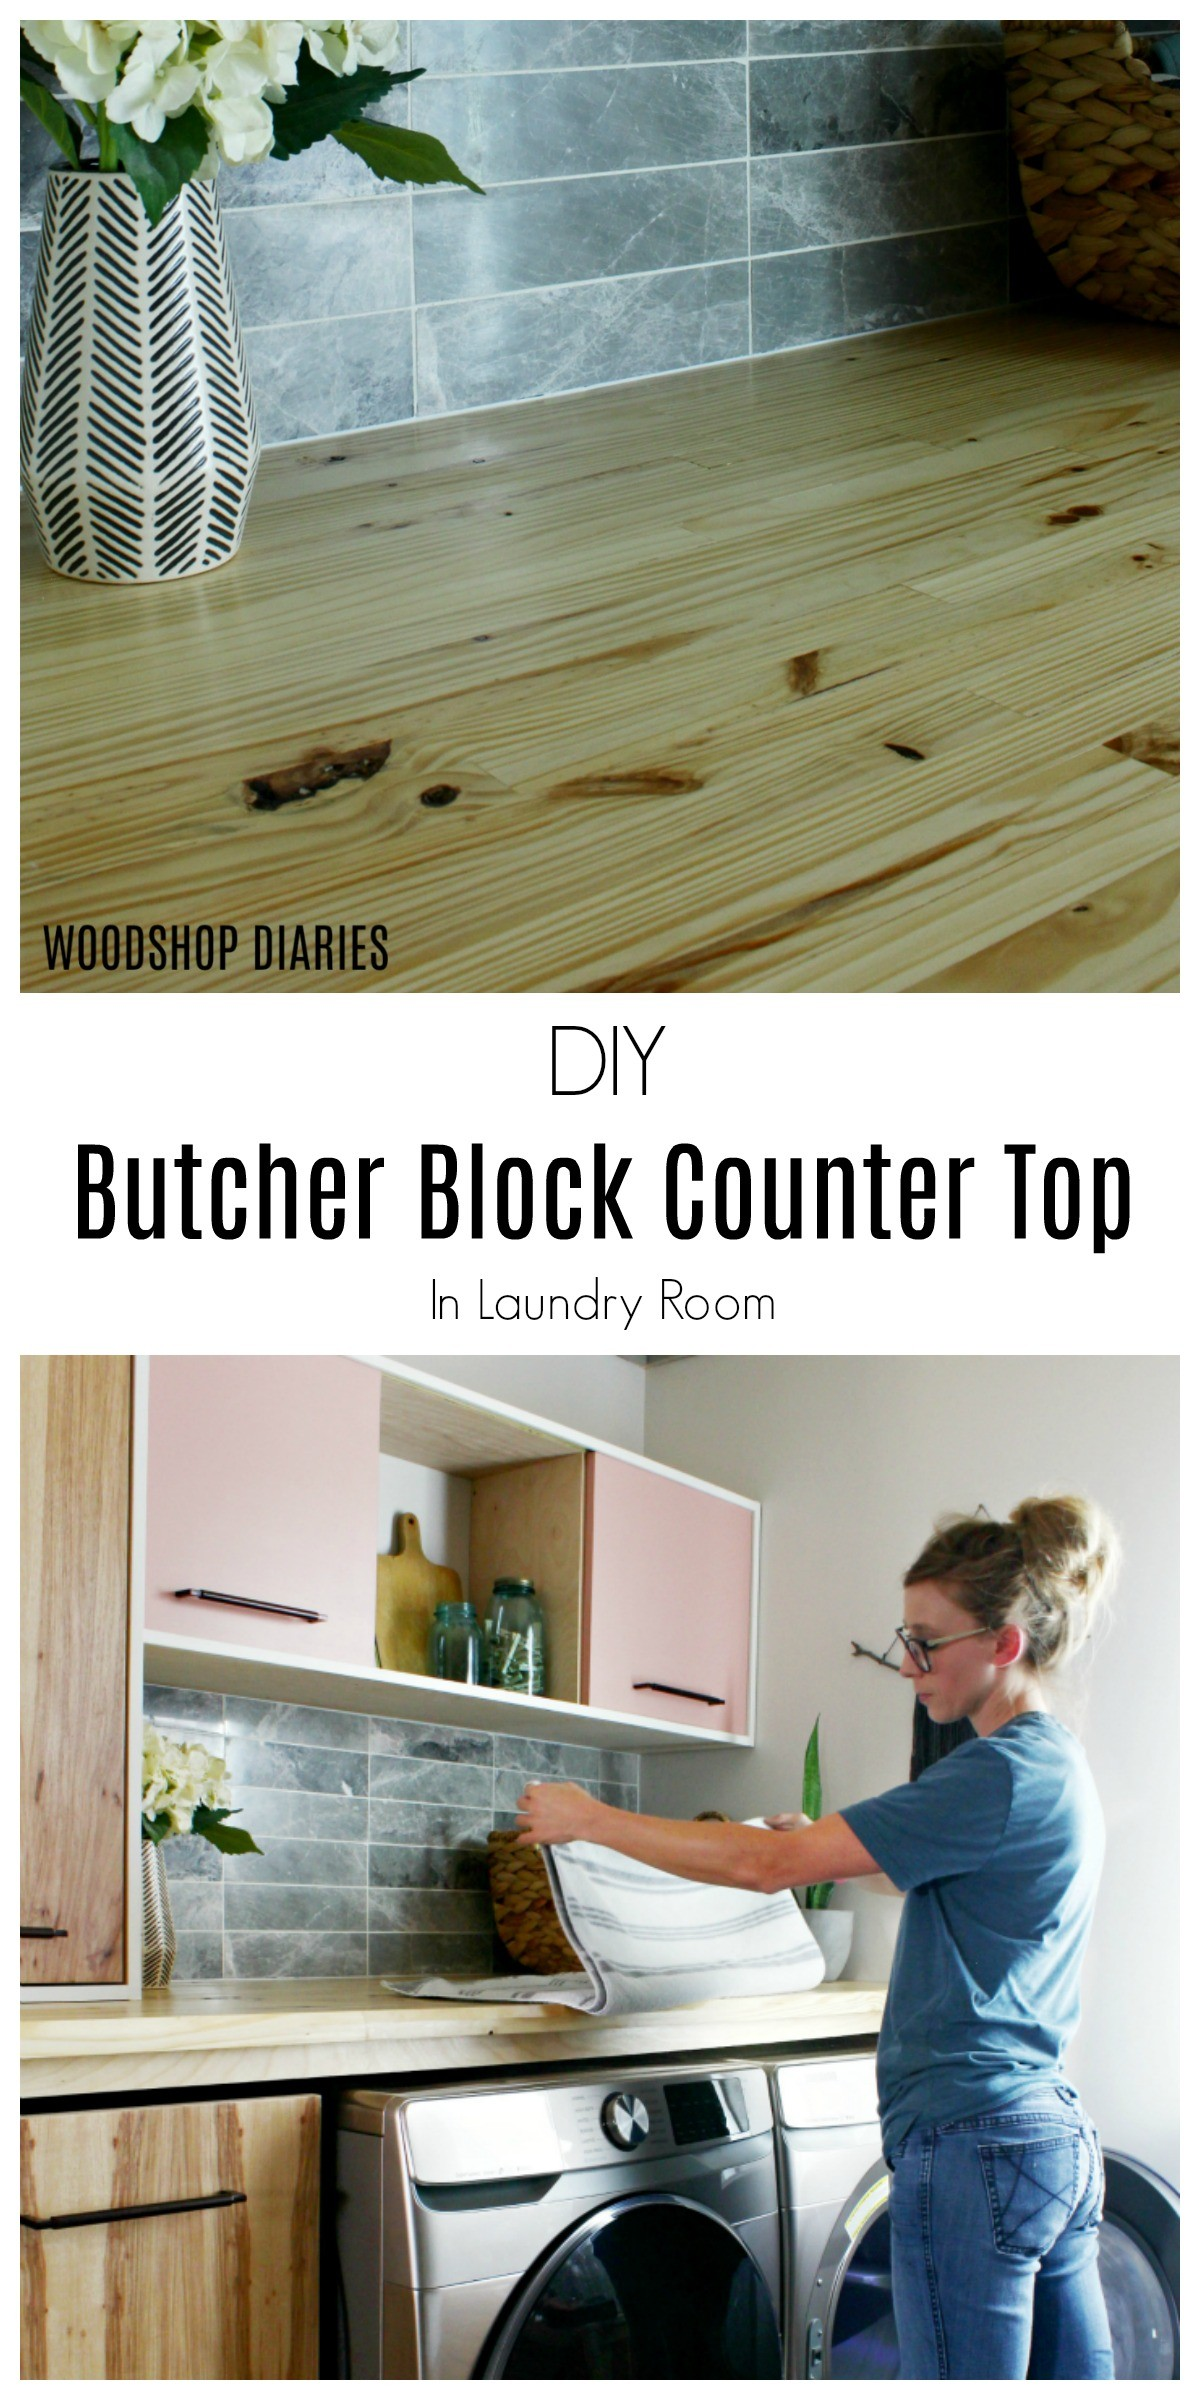 DIY Butcher Block Counter Top in Laundry Room--A Step by Step Tutorial